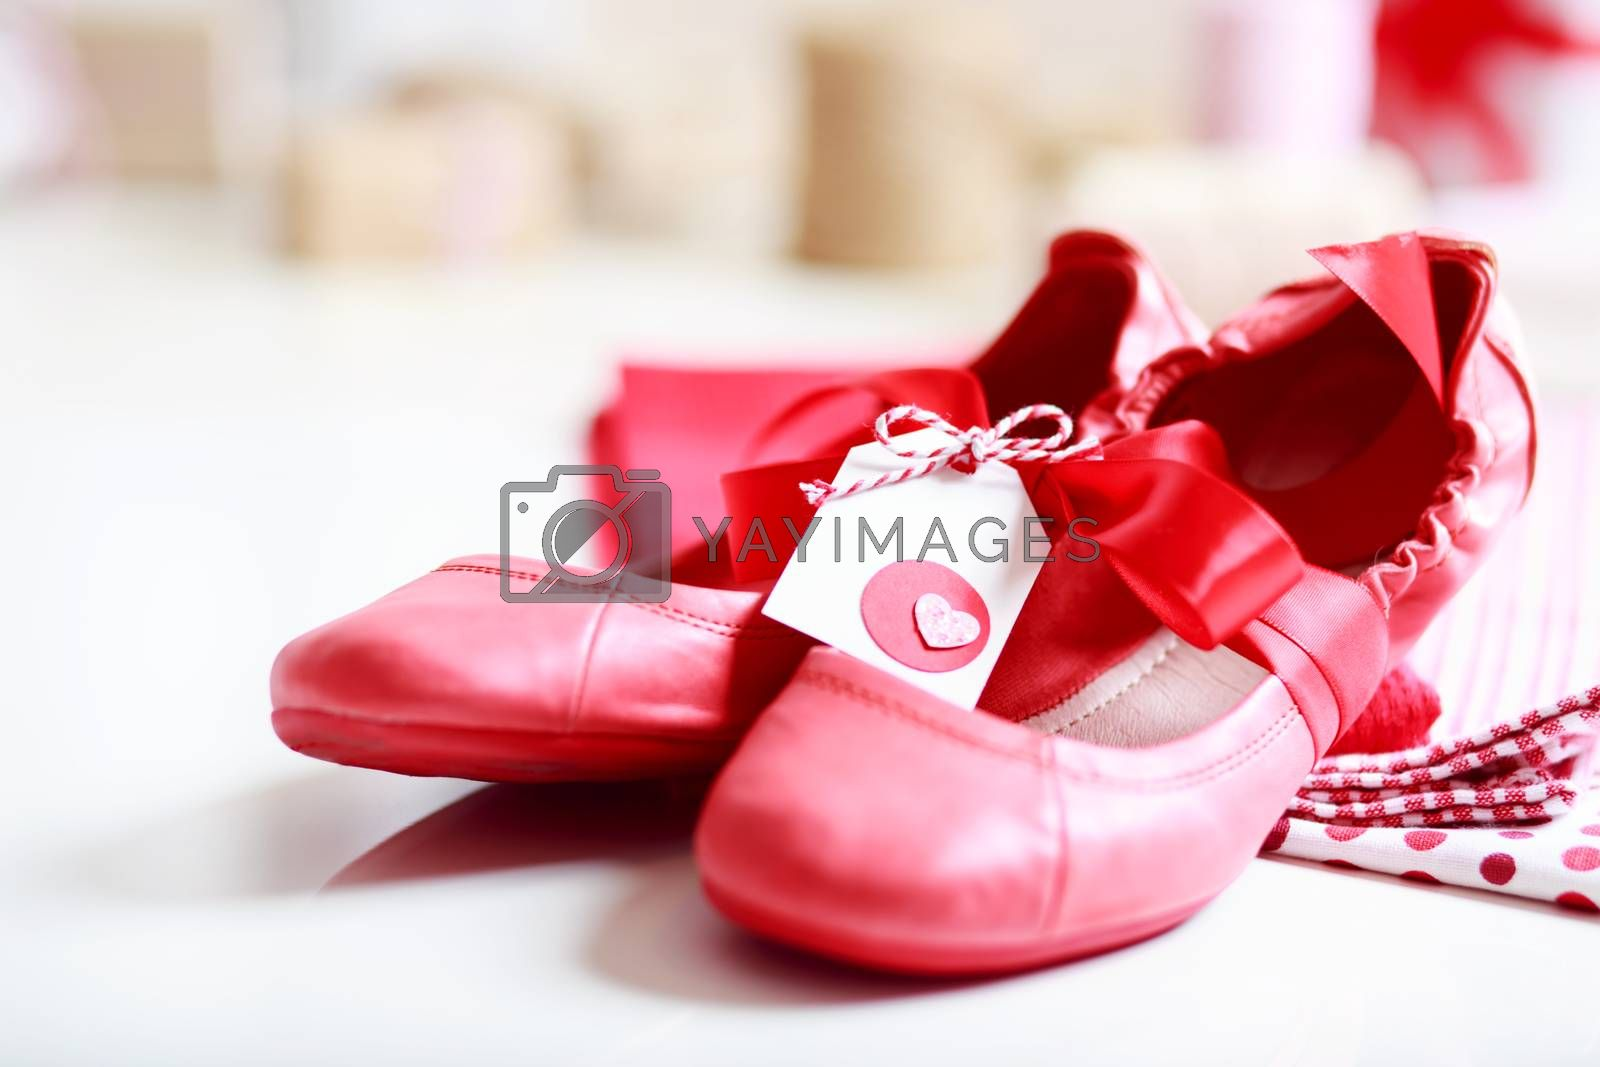 Royalty free image of Red shoes with ribbon and heart tag by melpomene